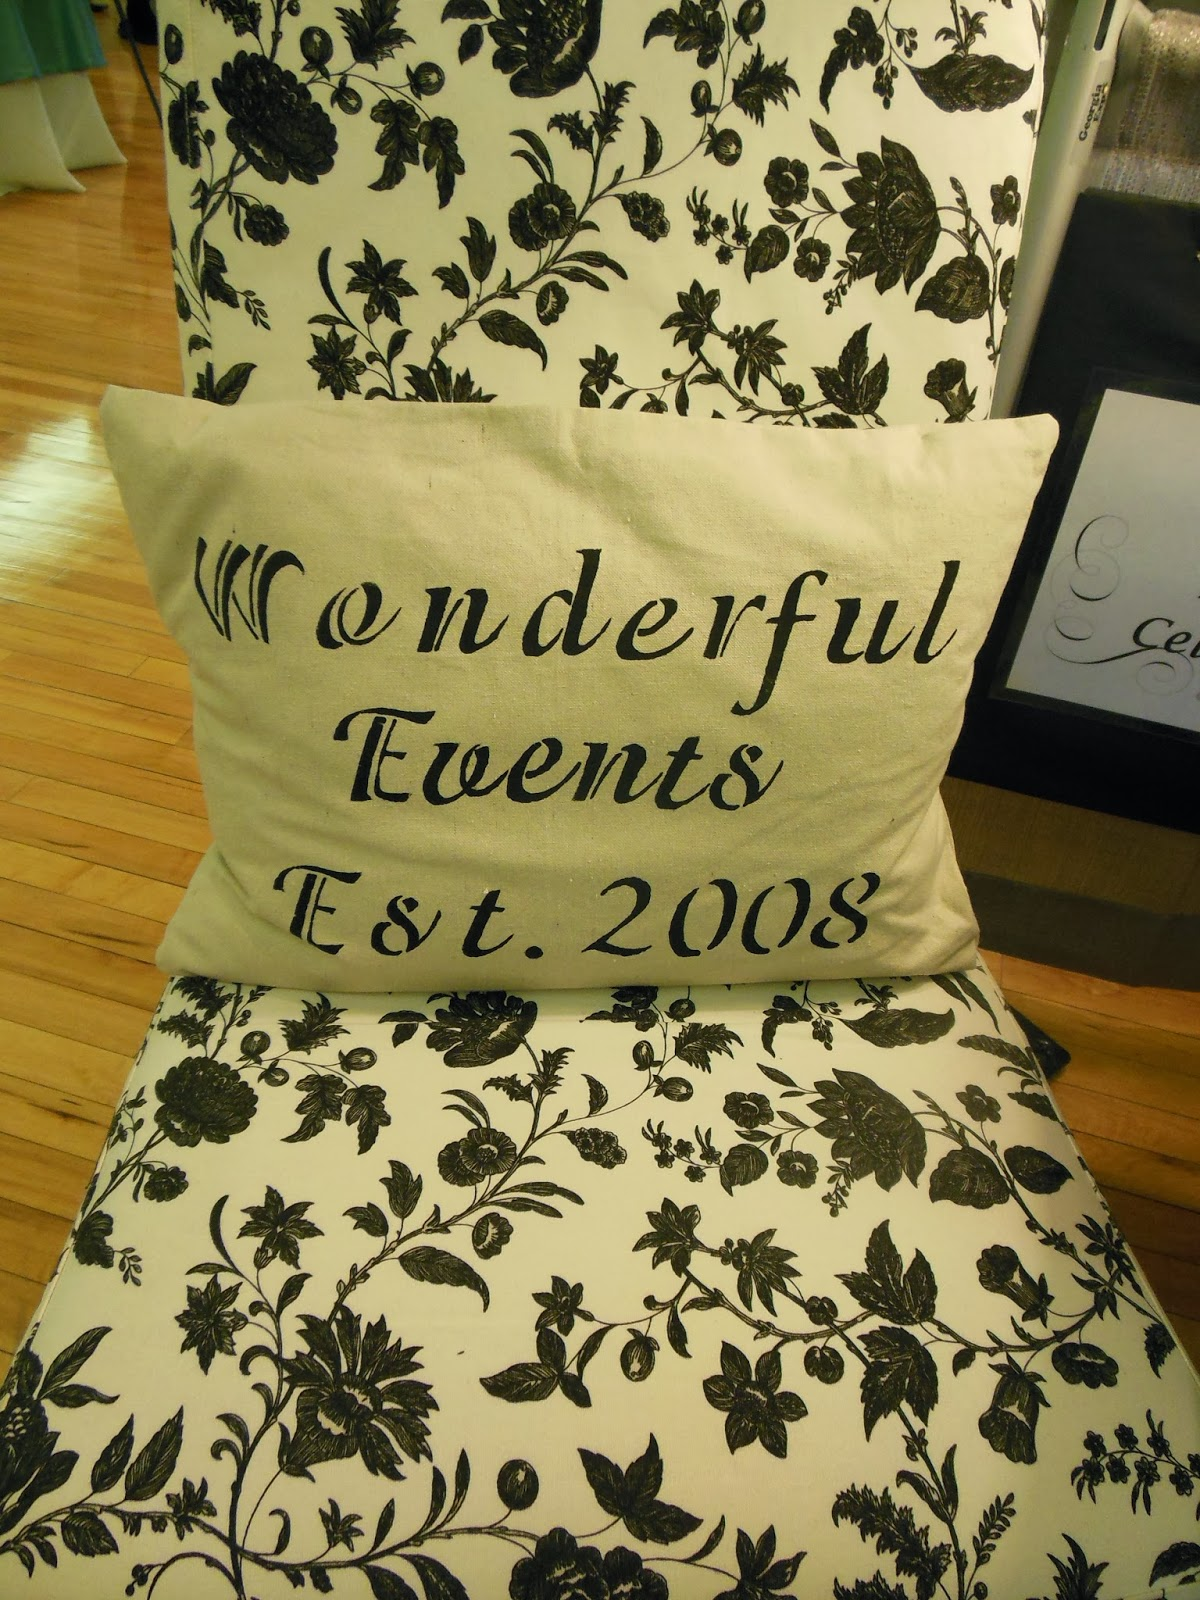 Chair Cover Rentals Gainesville Fl Gumtree Wedding Covers For Sale Wonderful Events And Celebrations 2014